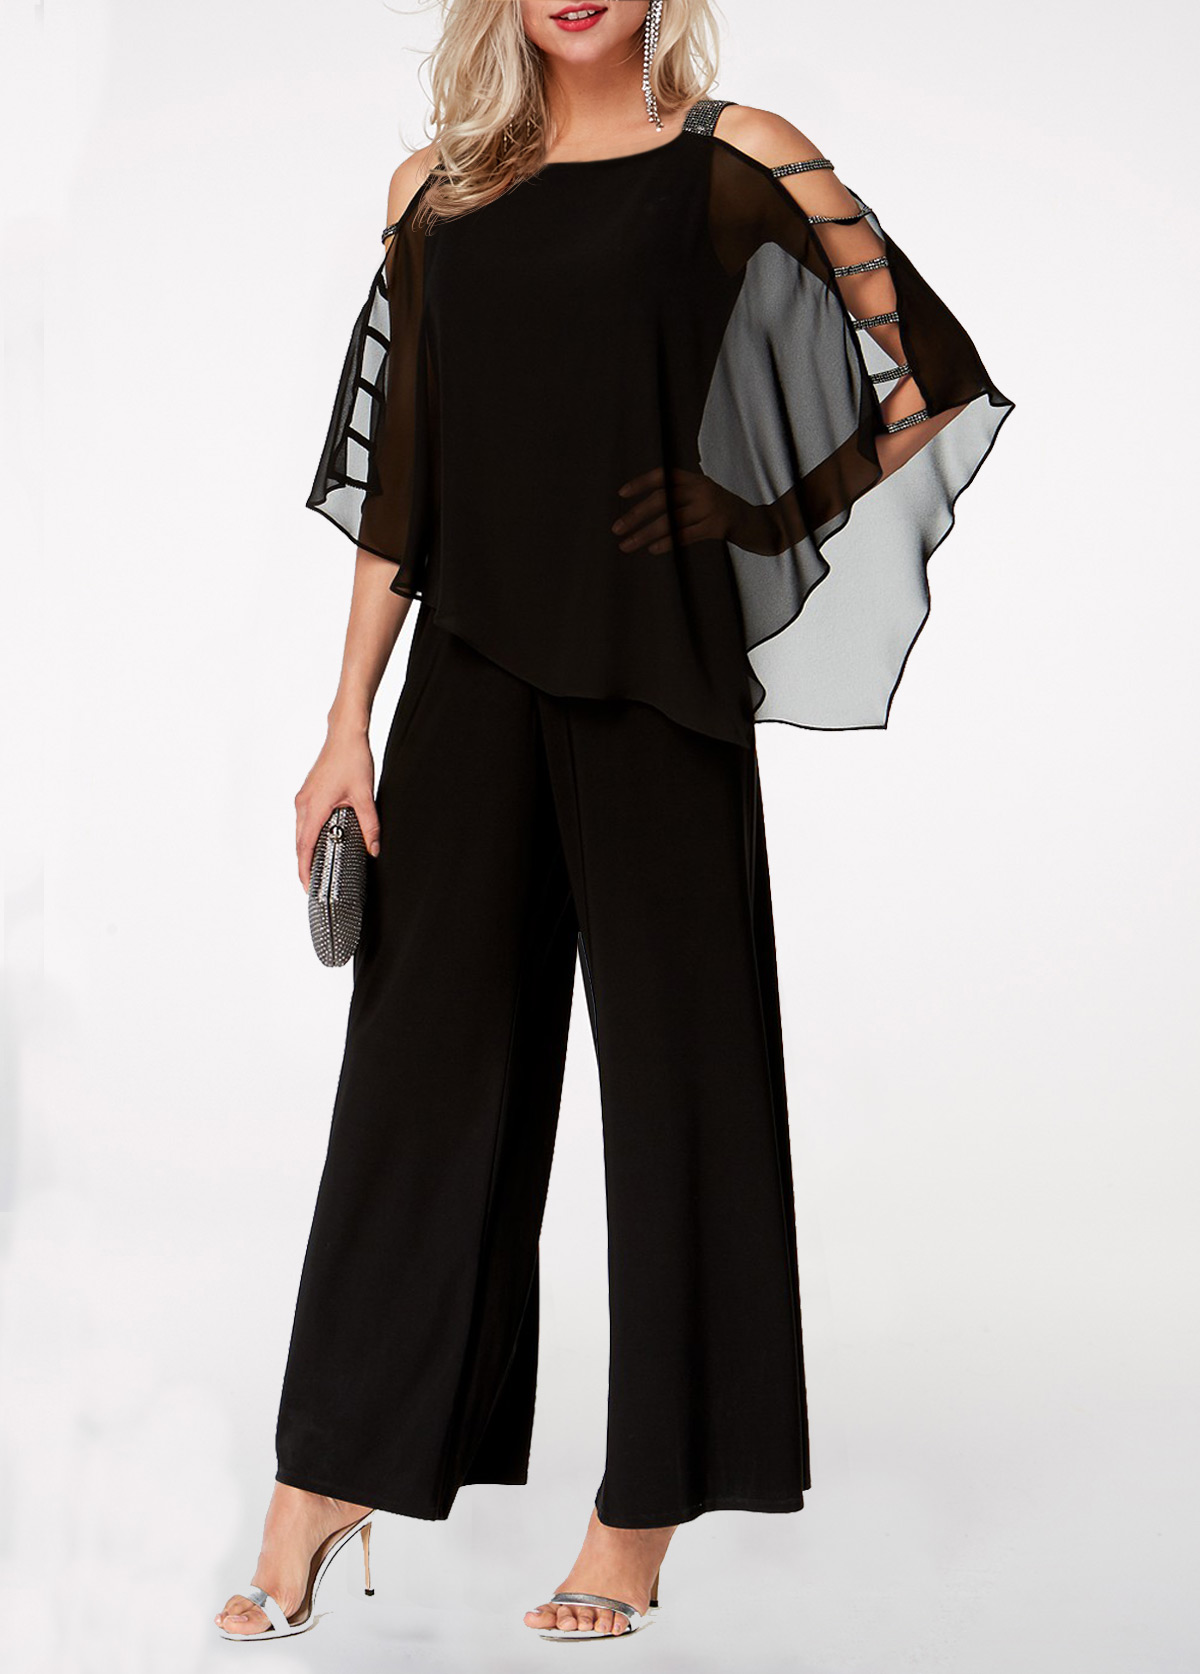 Ladder Cutout Sleeve Chiffon Overlay Black Jumpsuit